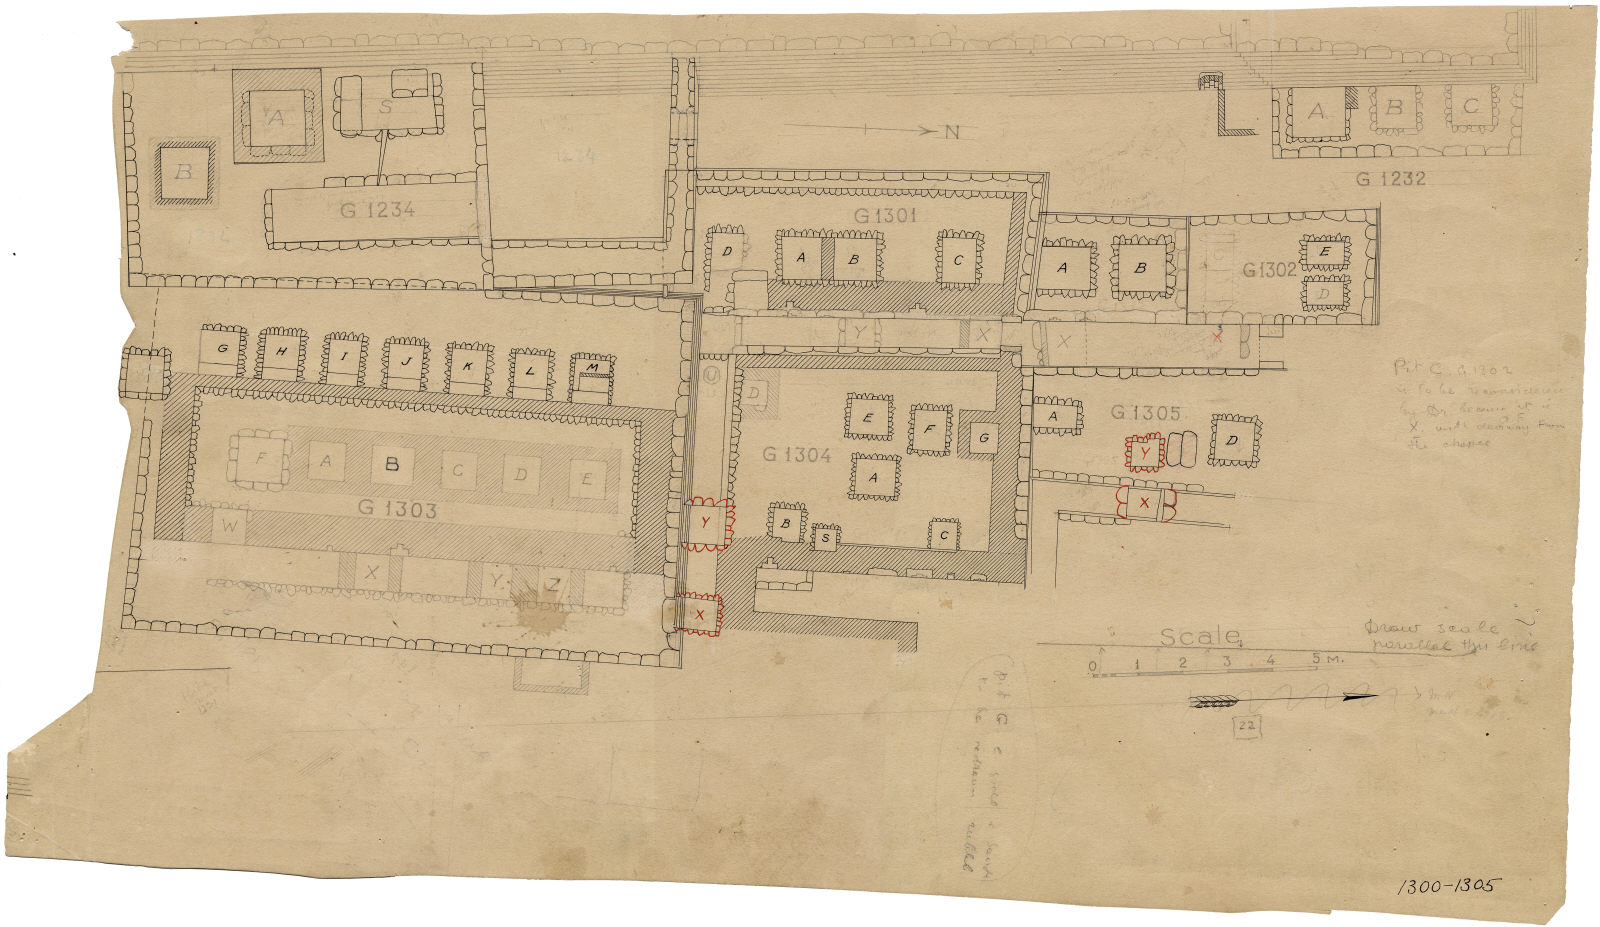 Maps and plans: Plan of G 1232, G 1234, G 1301, G 1302, G 1303, G 1304, G 1305